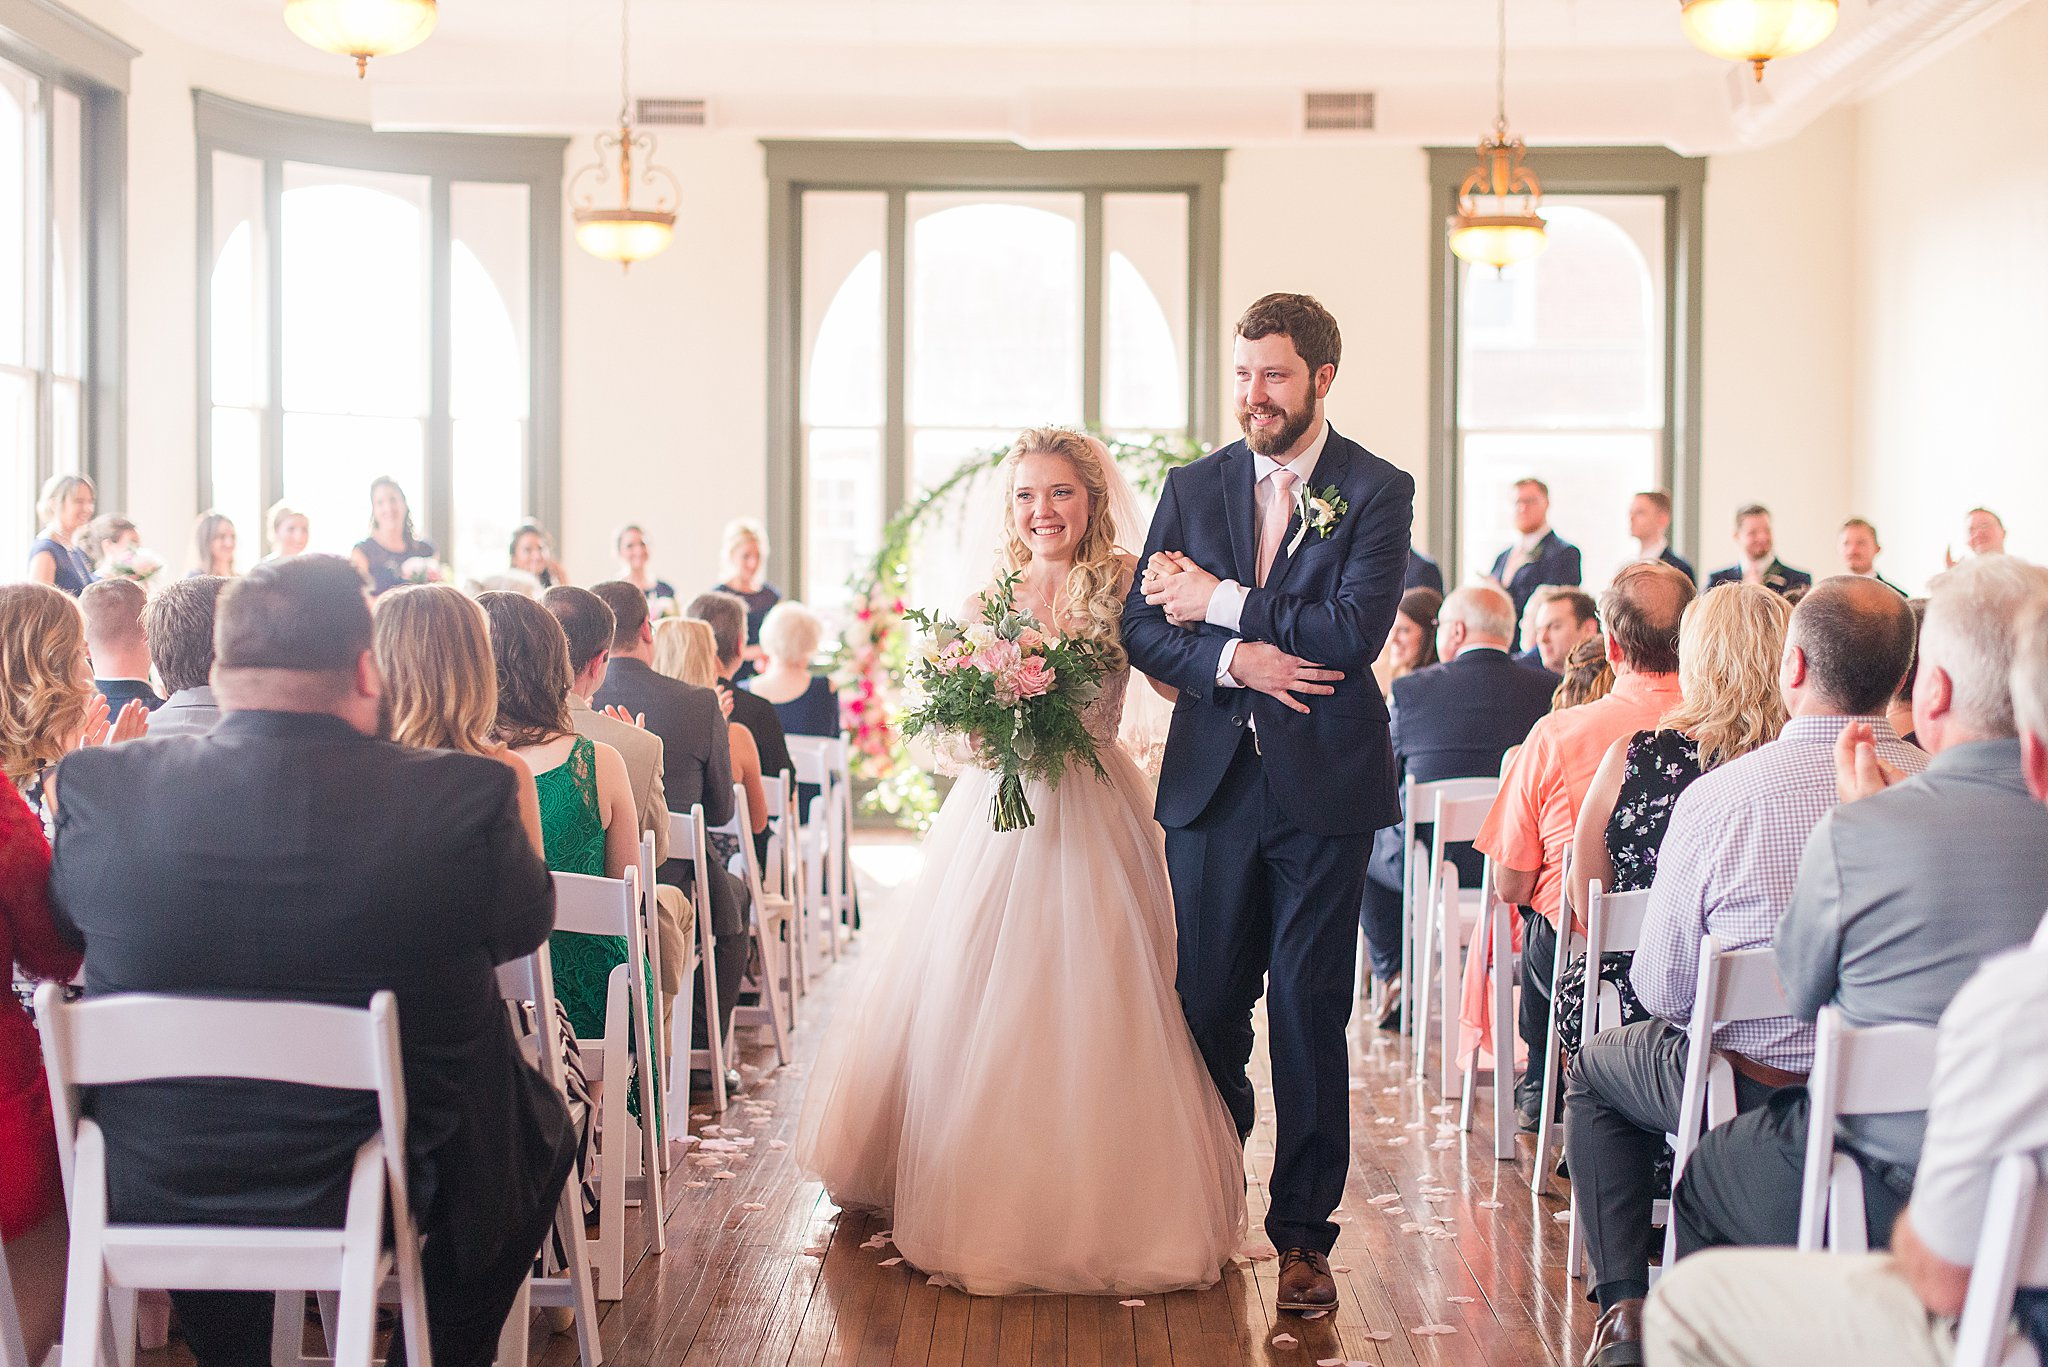 DC Couple weds at Premier West Virginia venue. Blush and Navy themed wedding in downtown Martinsburg.